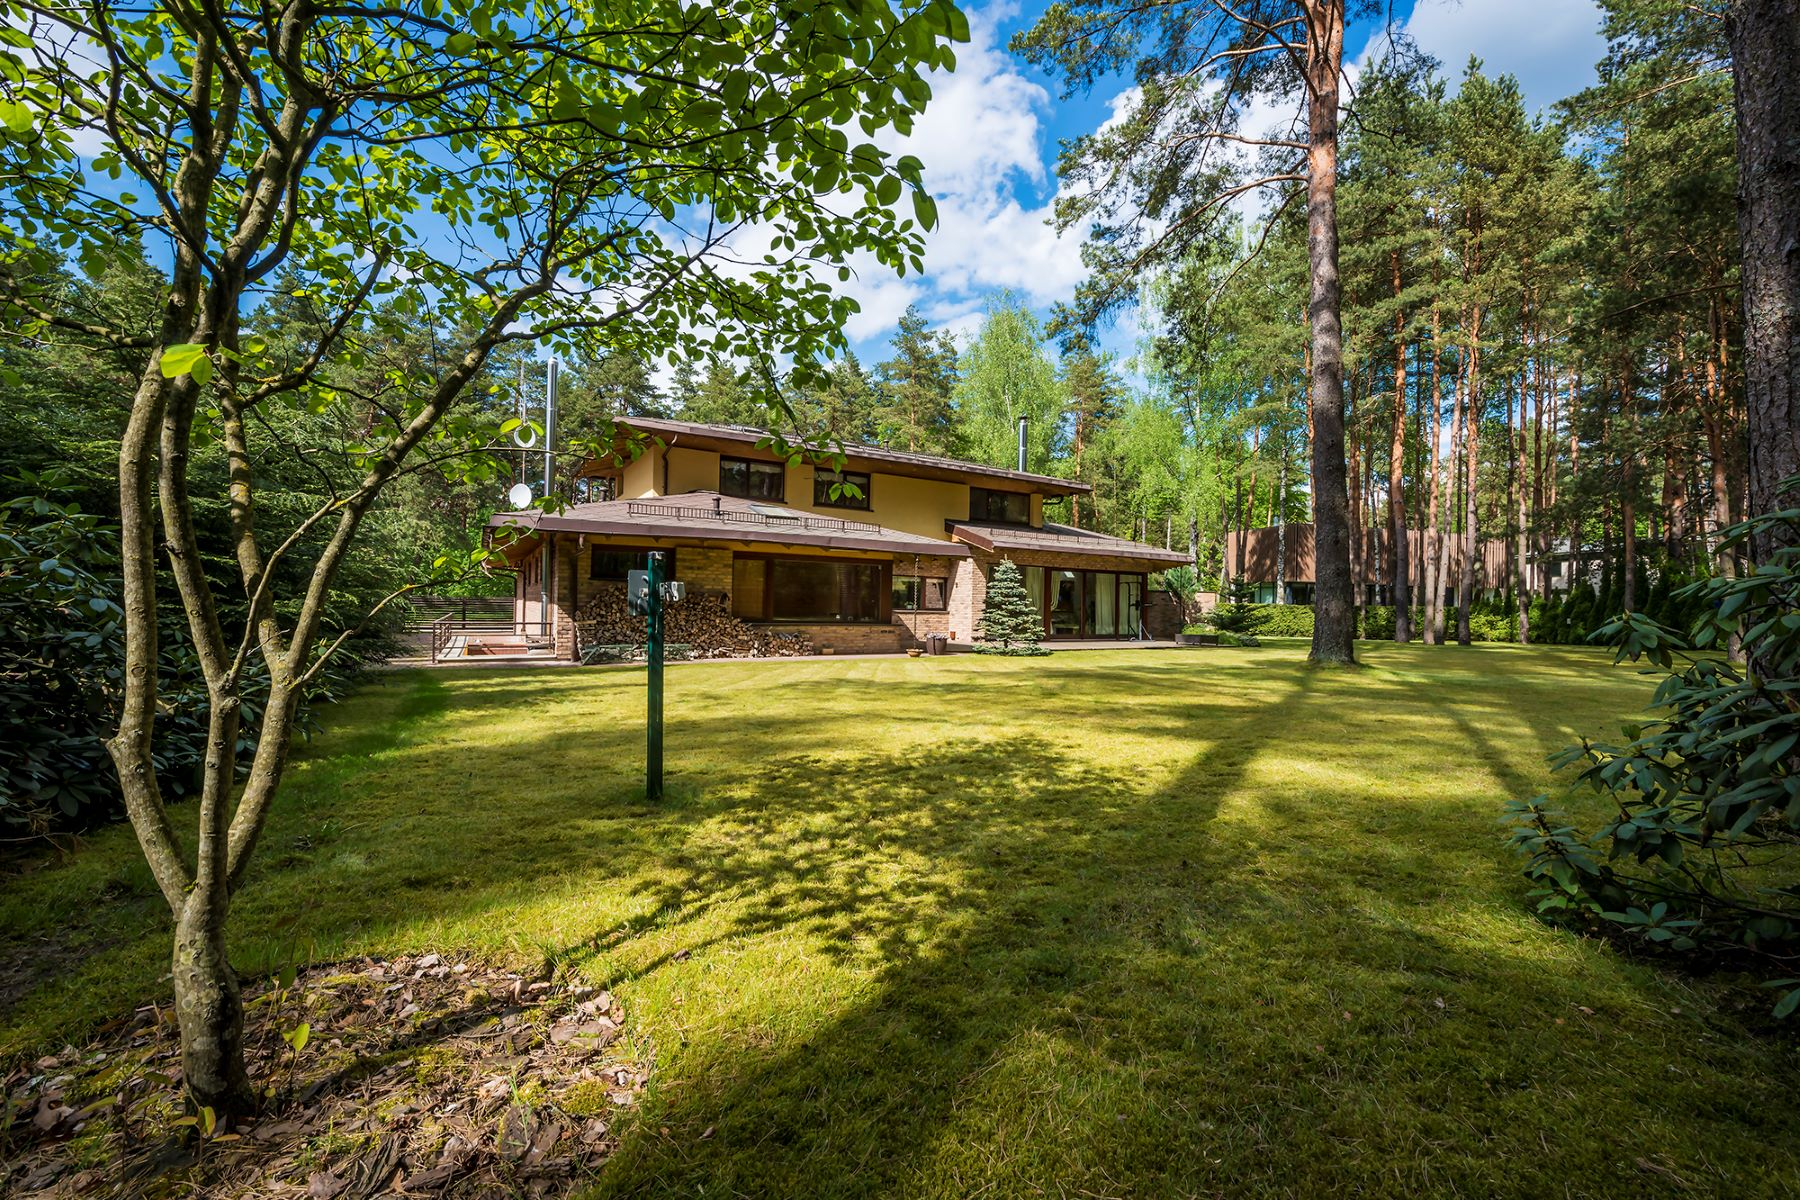 واحد منزل الأسرة للـ Sale في Provence Interior House Surrounded By Pines In Valakampiai Vilnius, Vilnius County, Lithuania